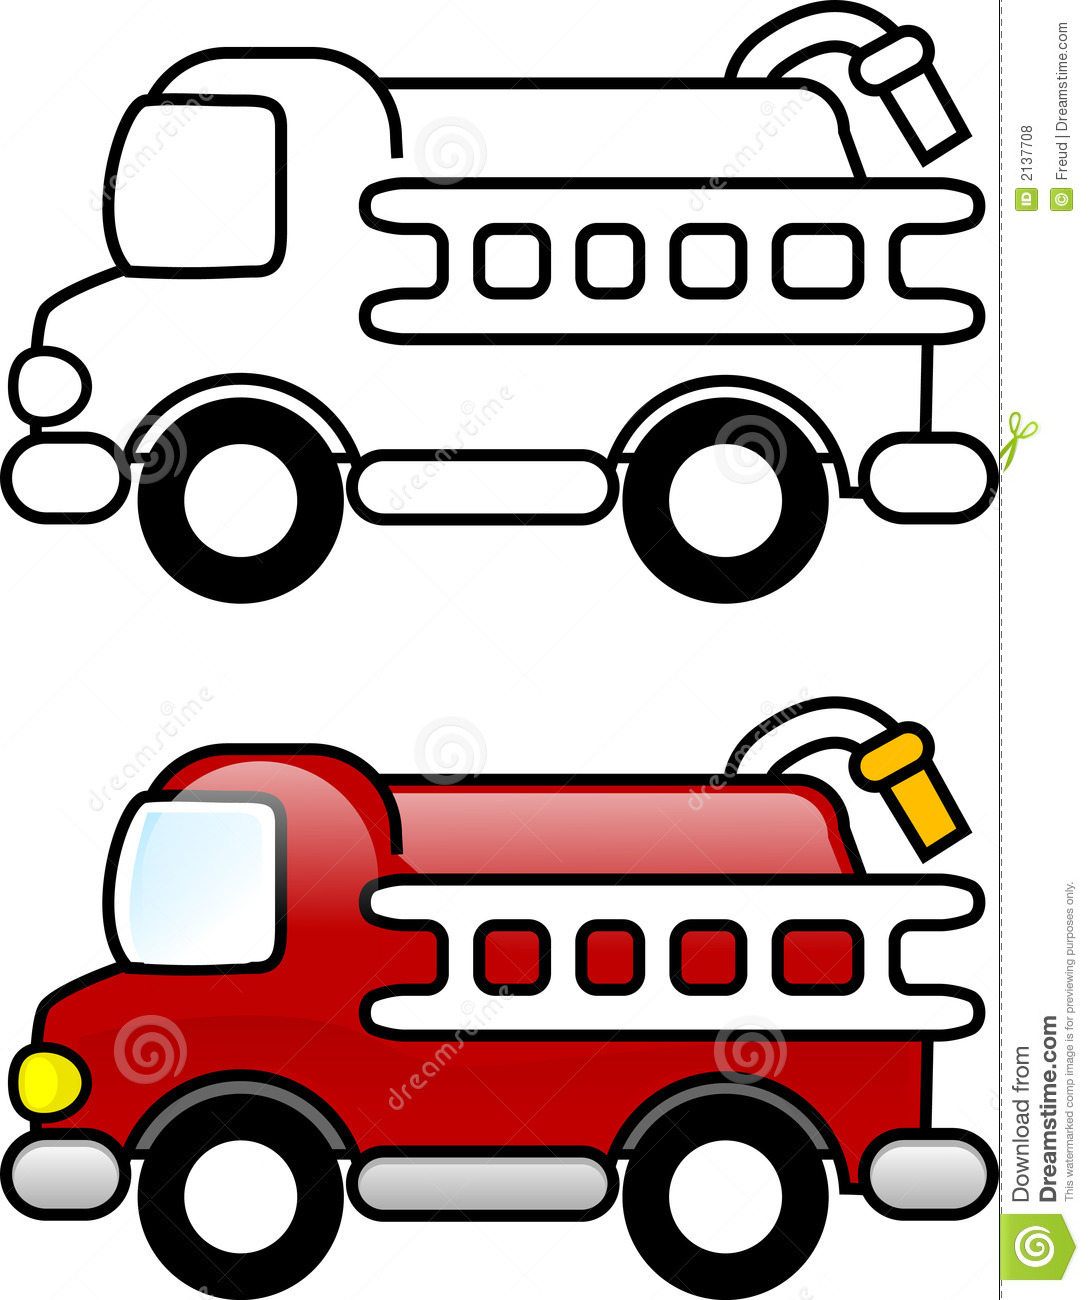 free clipart images fire trucks - photo #42